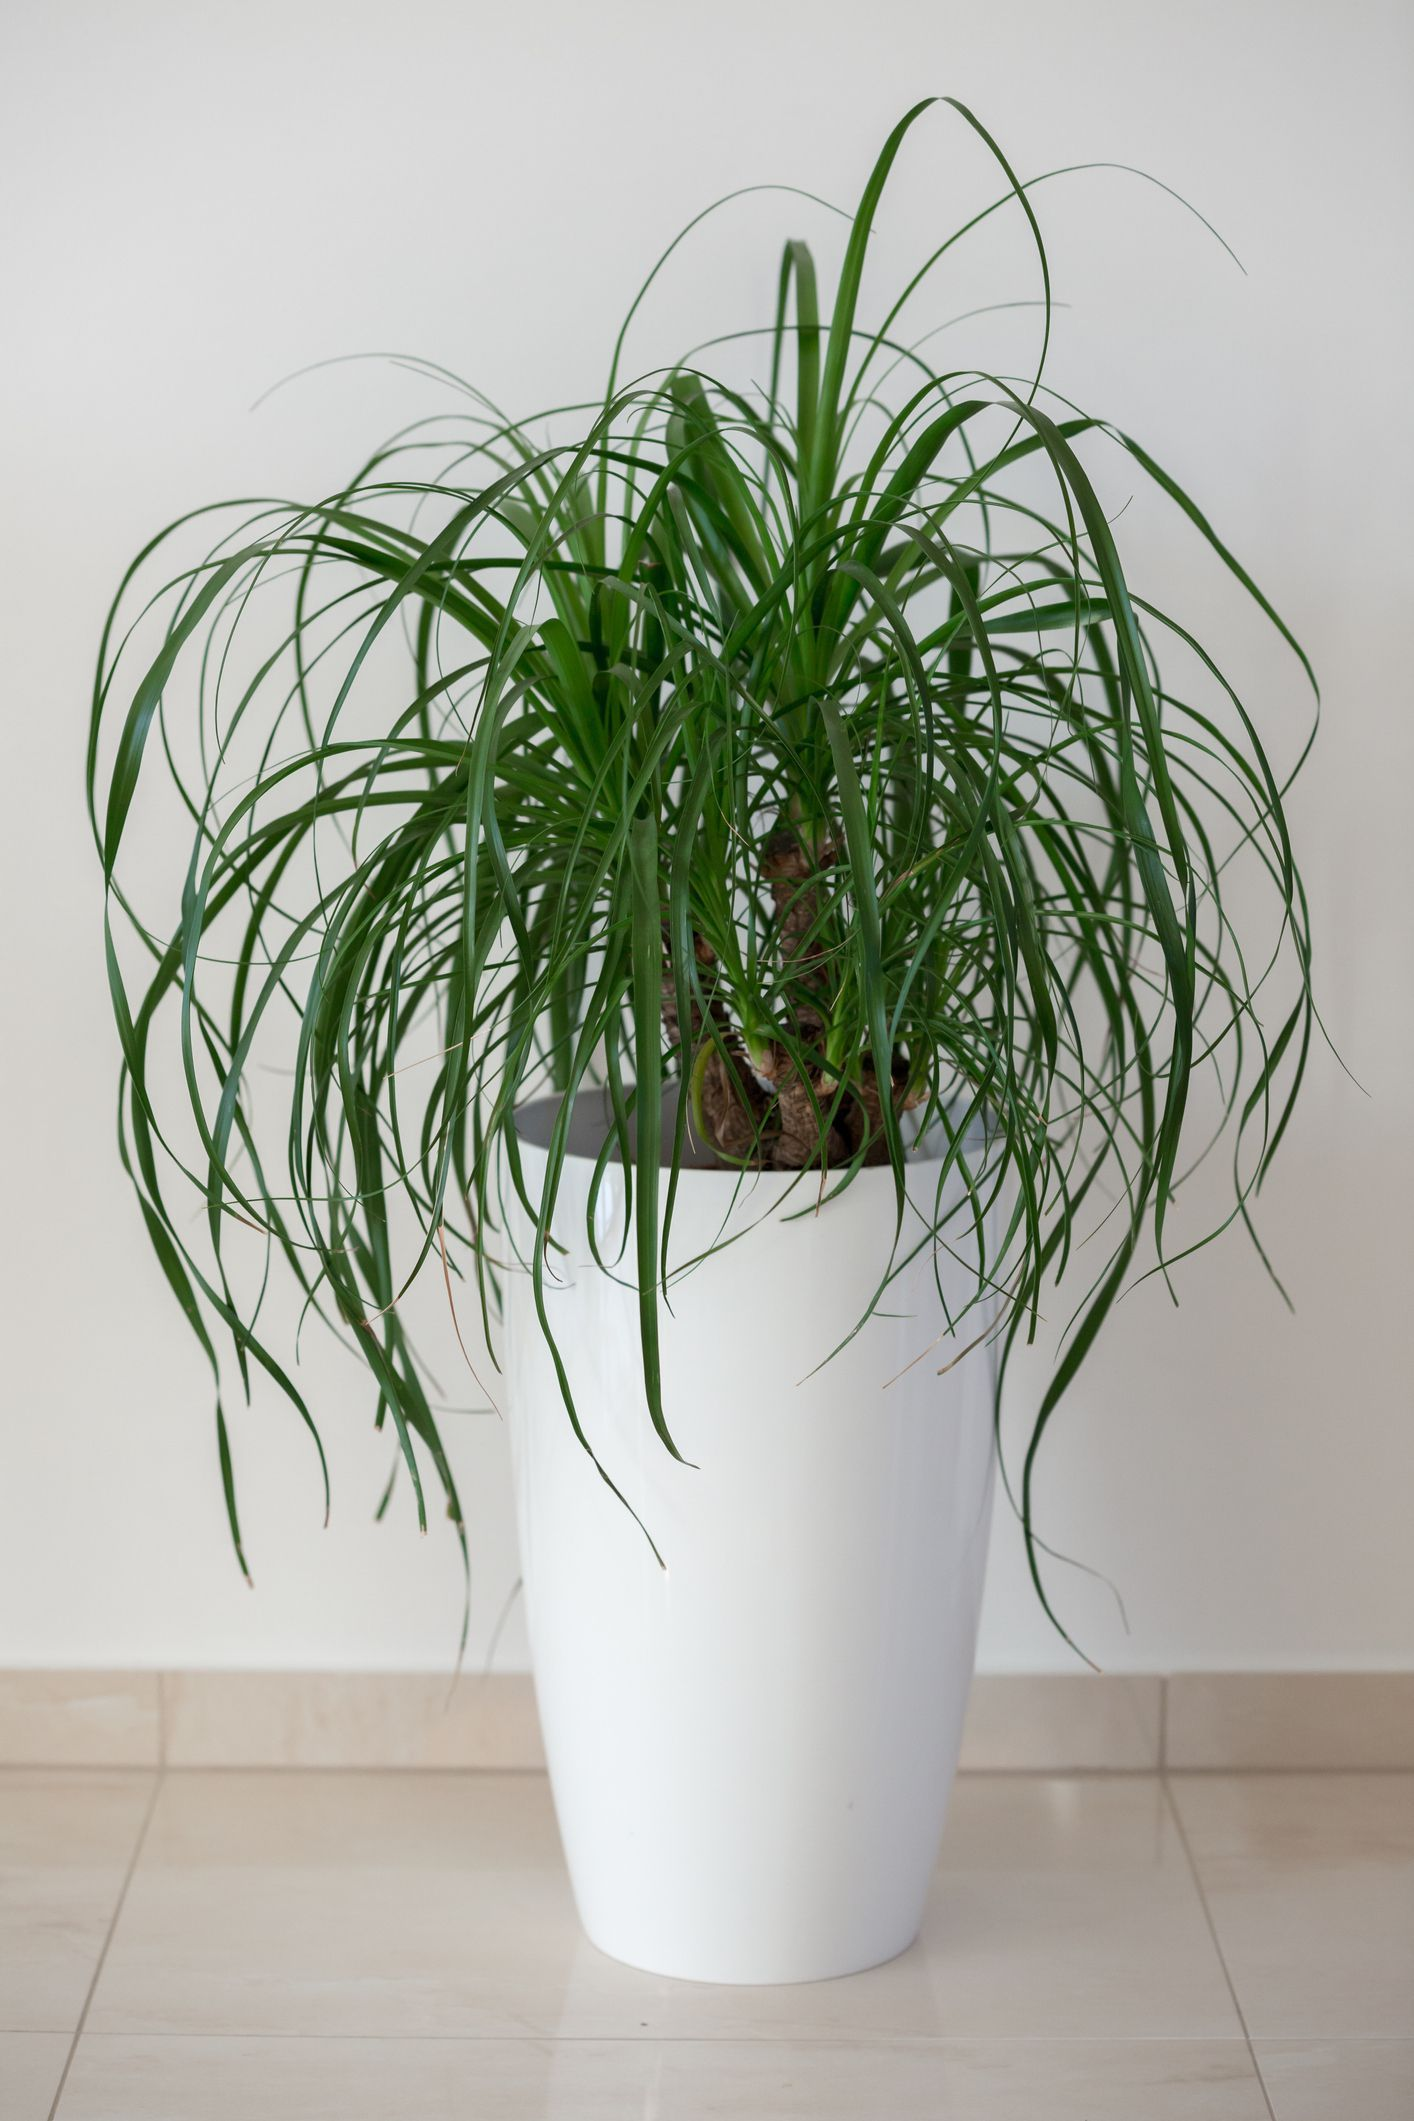 Chrysalidocarpus Space For Life Ponytail Palm Beaucarnea Recurvata